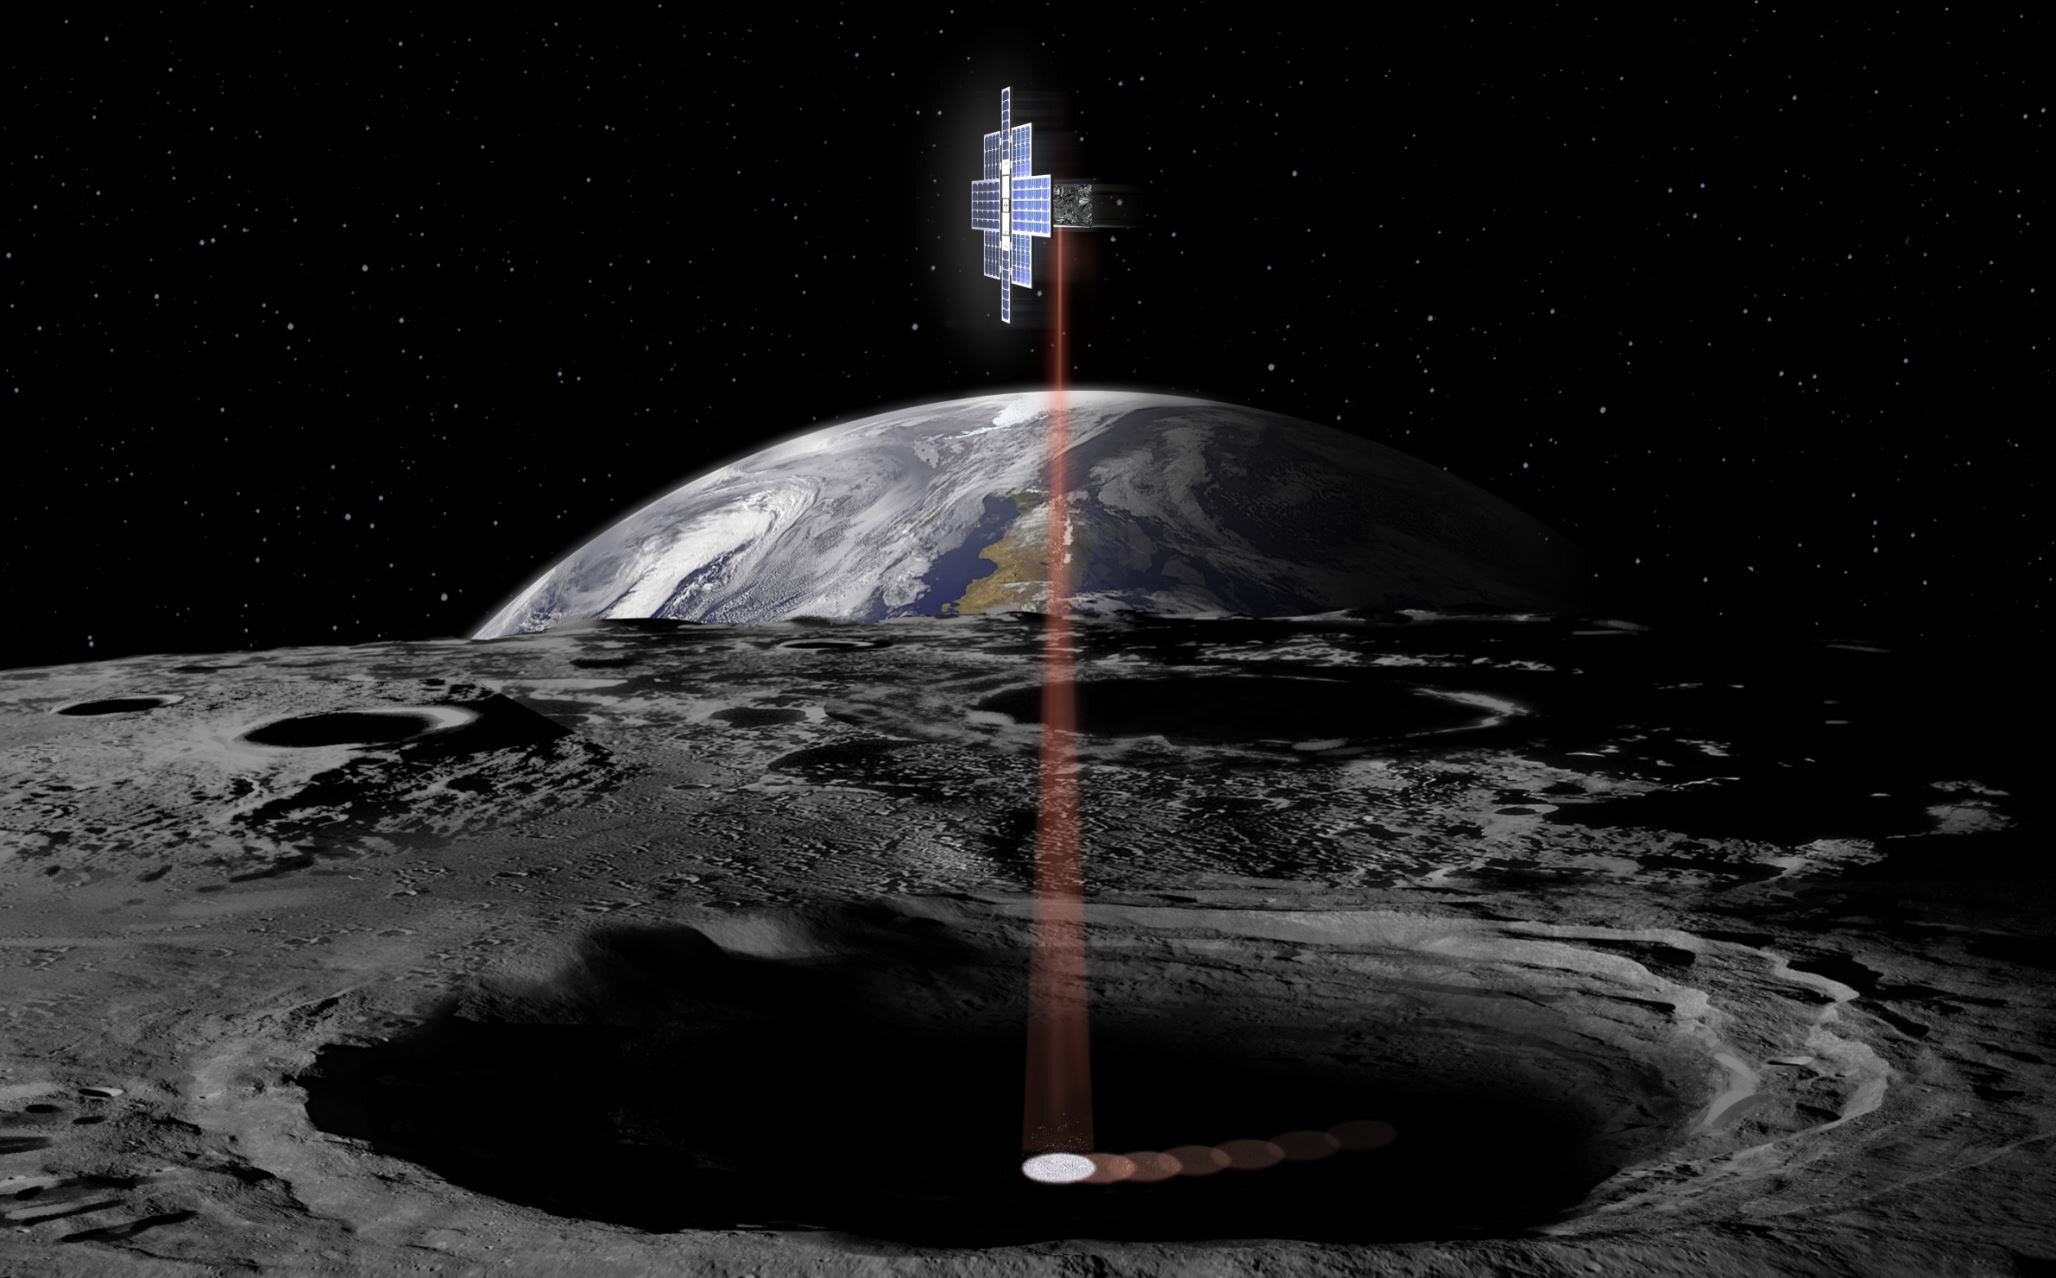 Artist concept of lunar flashlight. - Image credit:  NASA/JPL-Caltech